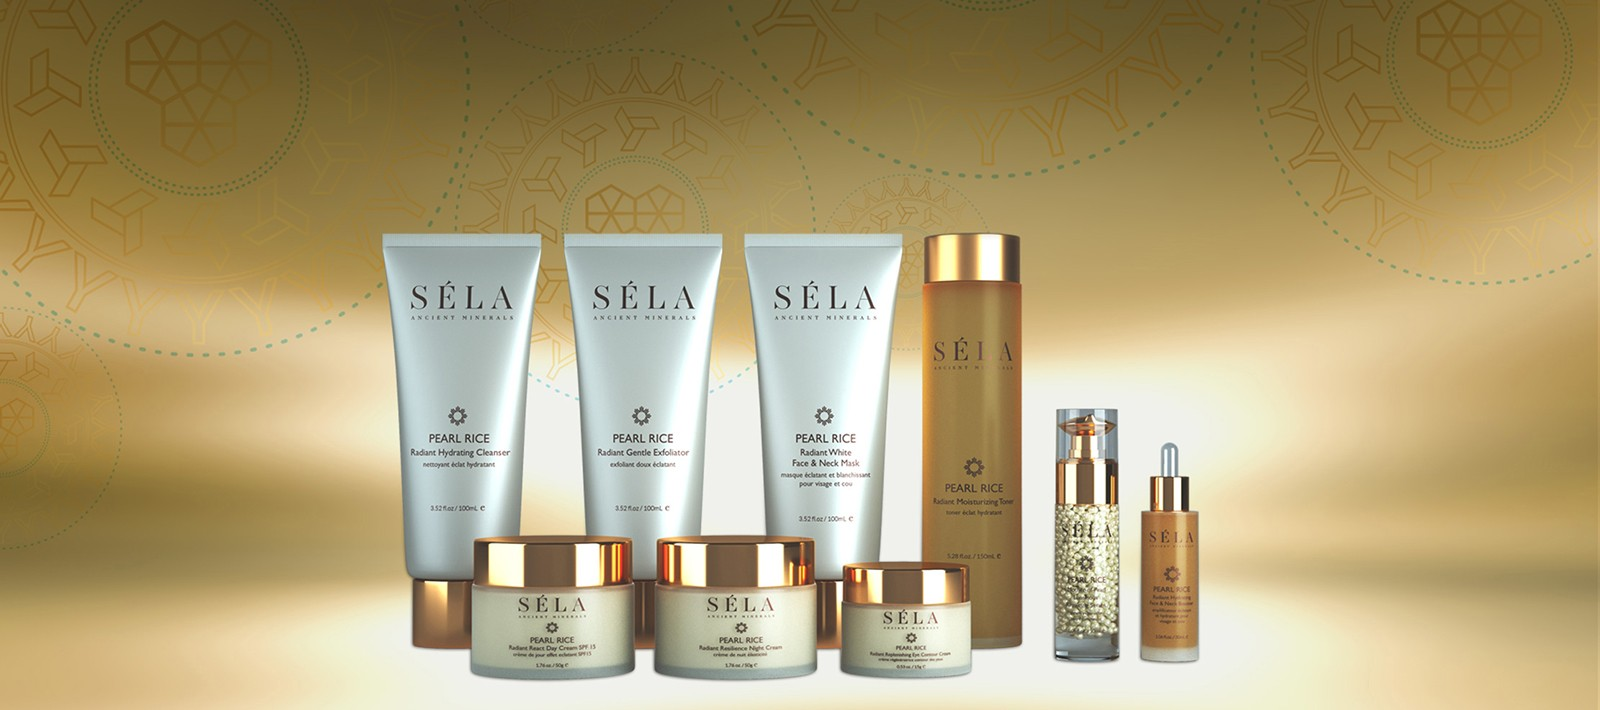 Skincare packaging design for Sela